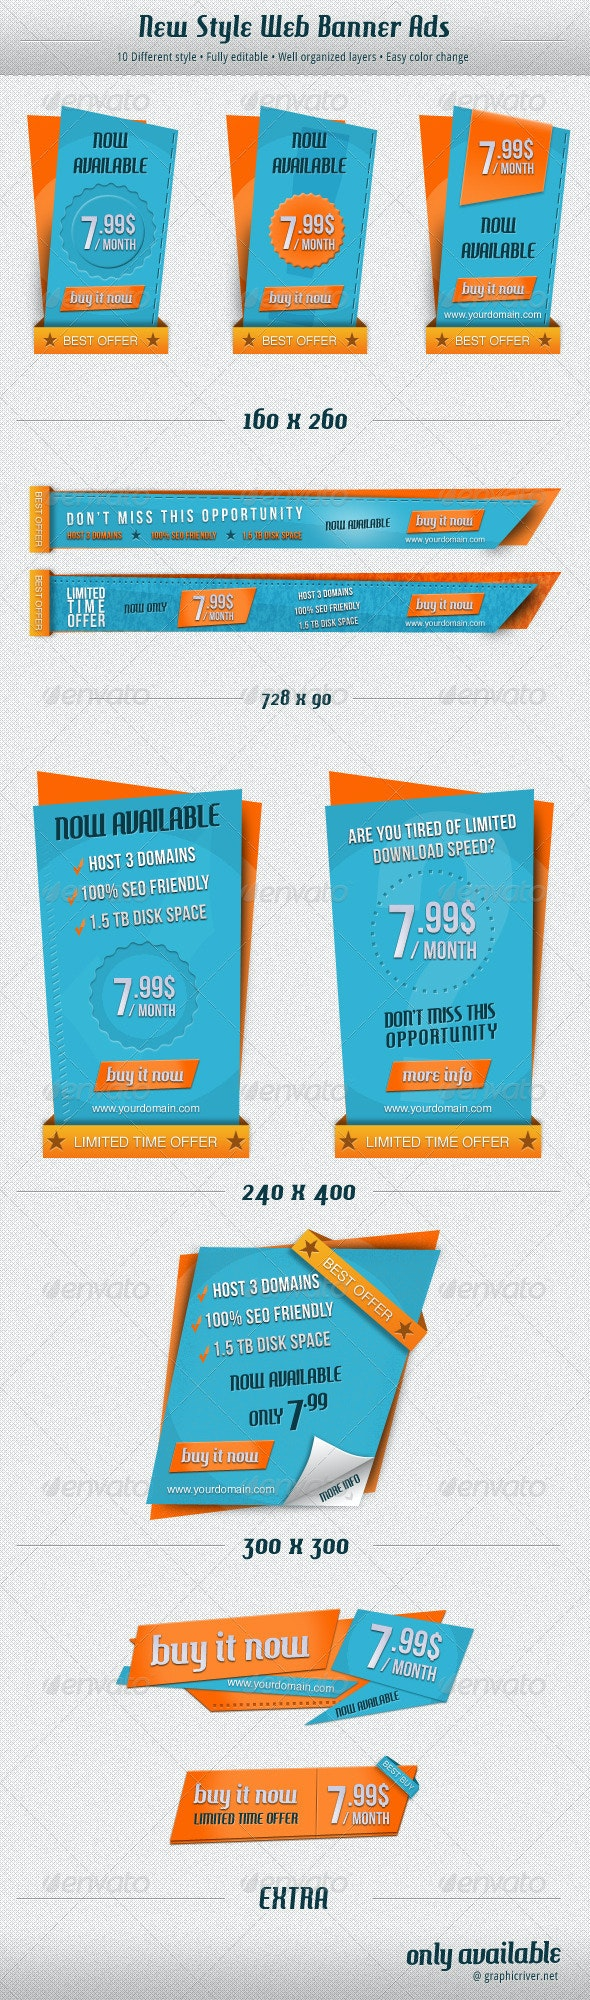 New Style Web Banner Ads - Banners & Ads Web Elements